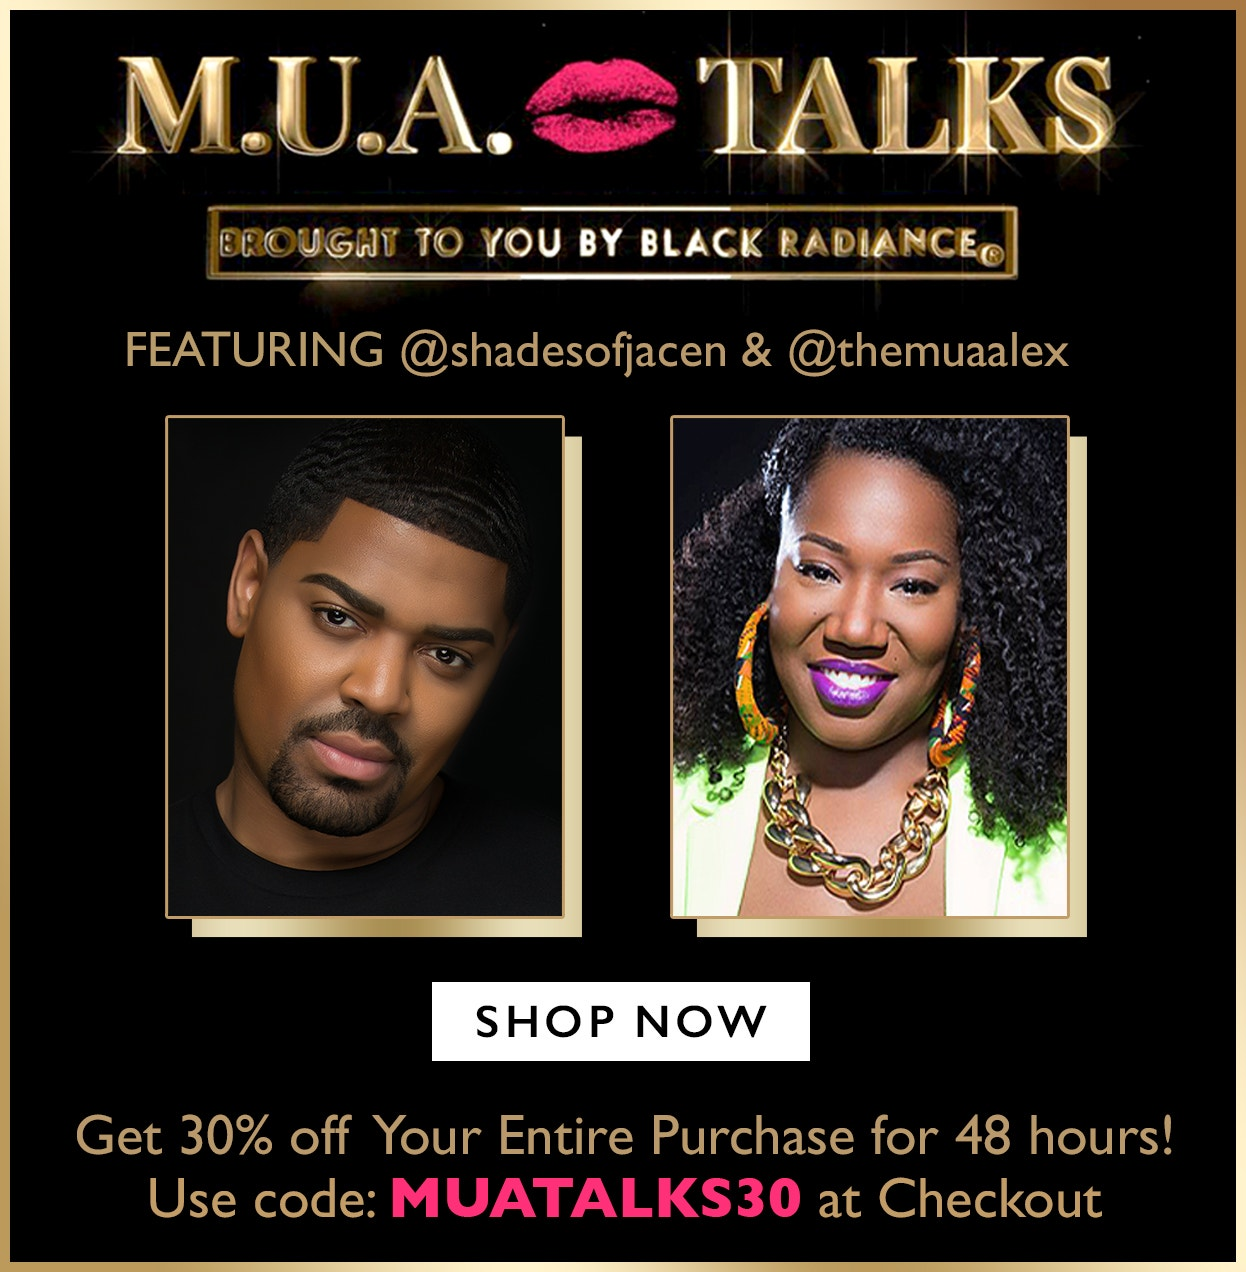 MUA Talks - Get 30% off Your Entire Purchase for 48 hours! Use Code: MUATALKS30